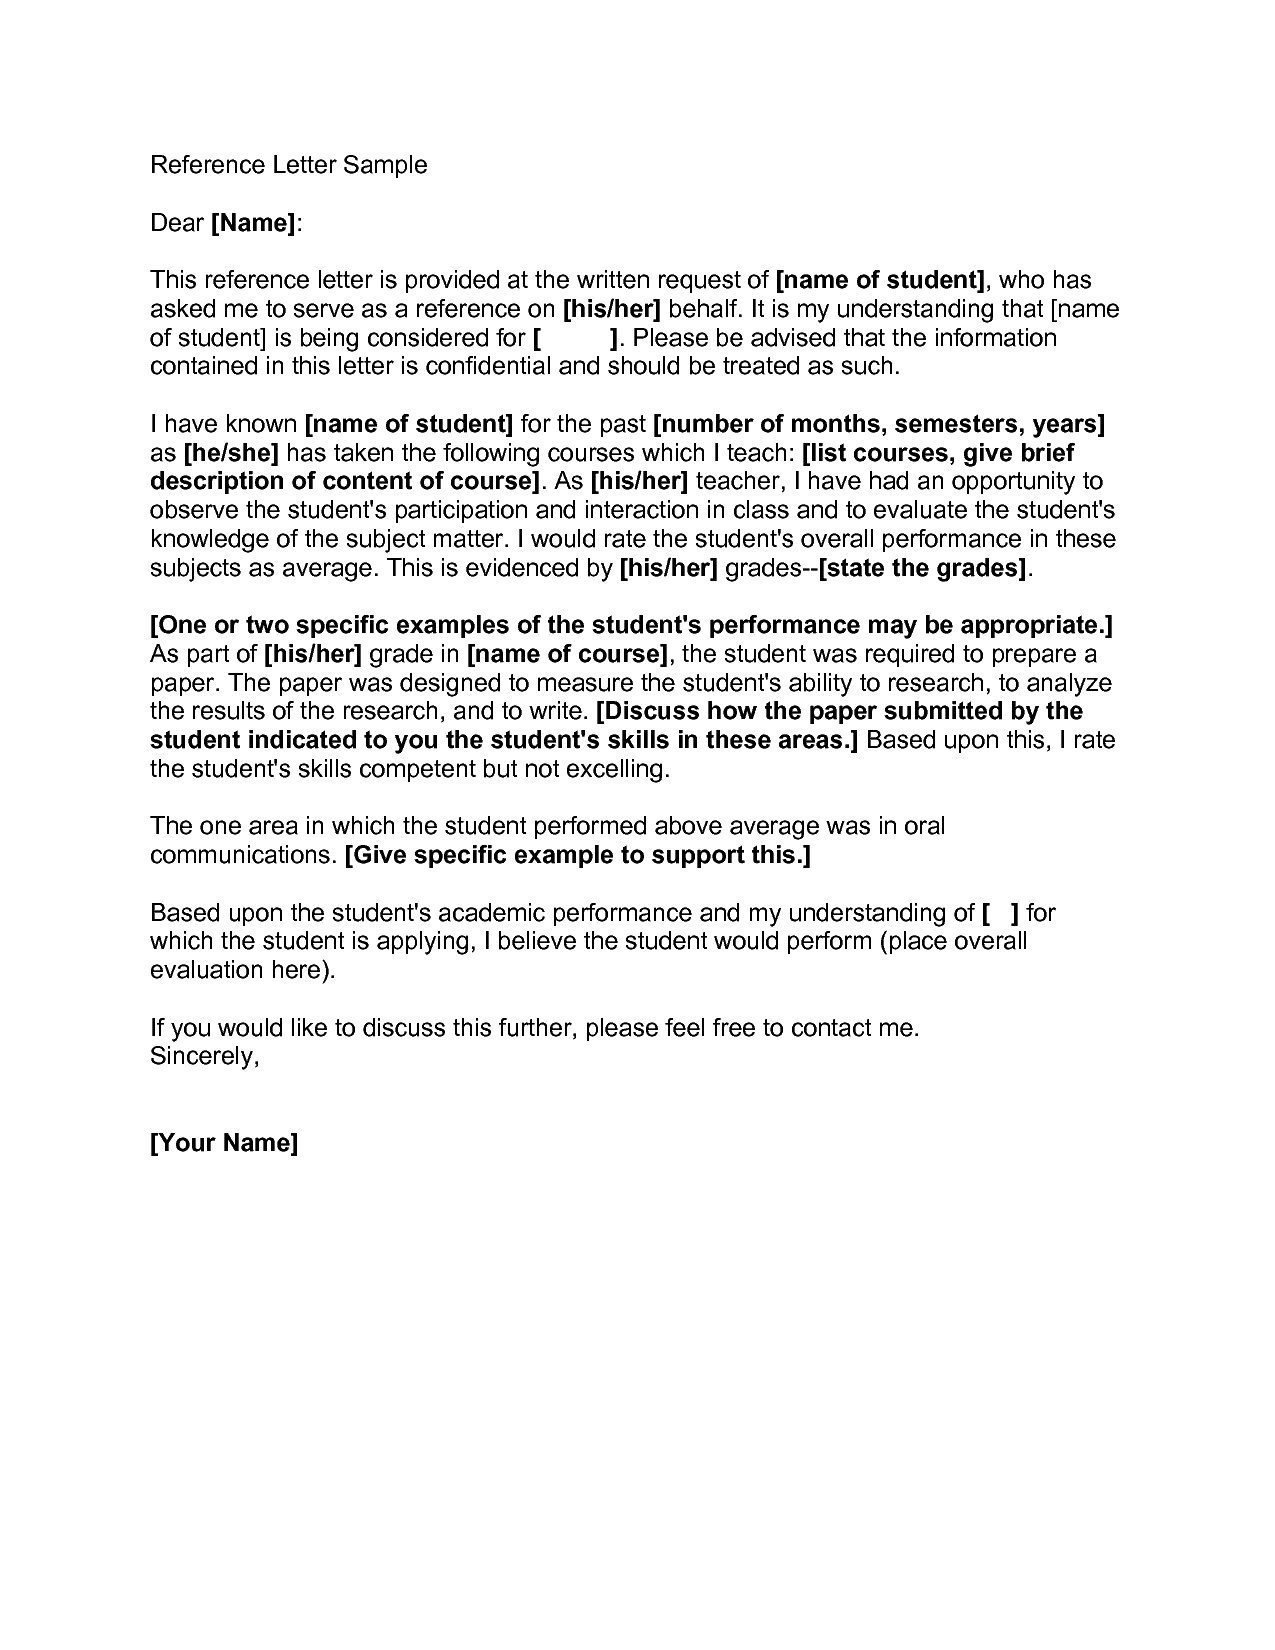 reference letter samplesexamples of reference letters request reference letter samples examples of reference lettersreference letters business letter sample